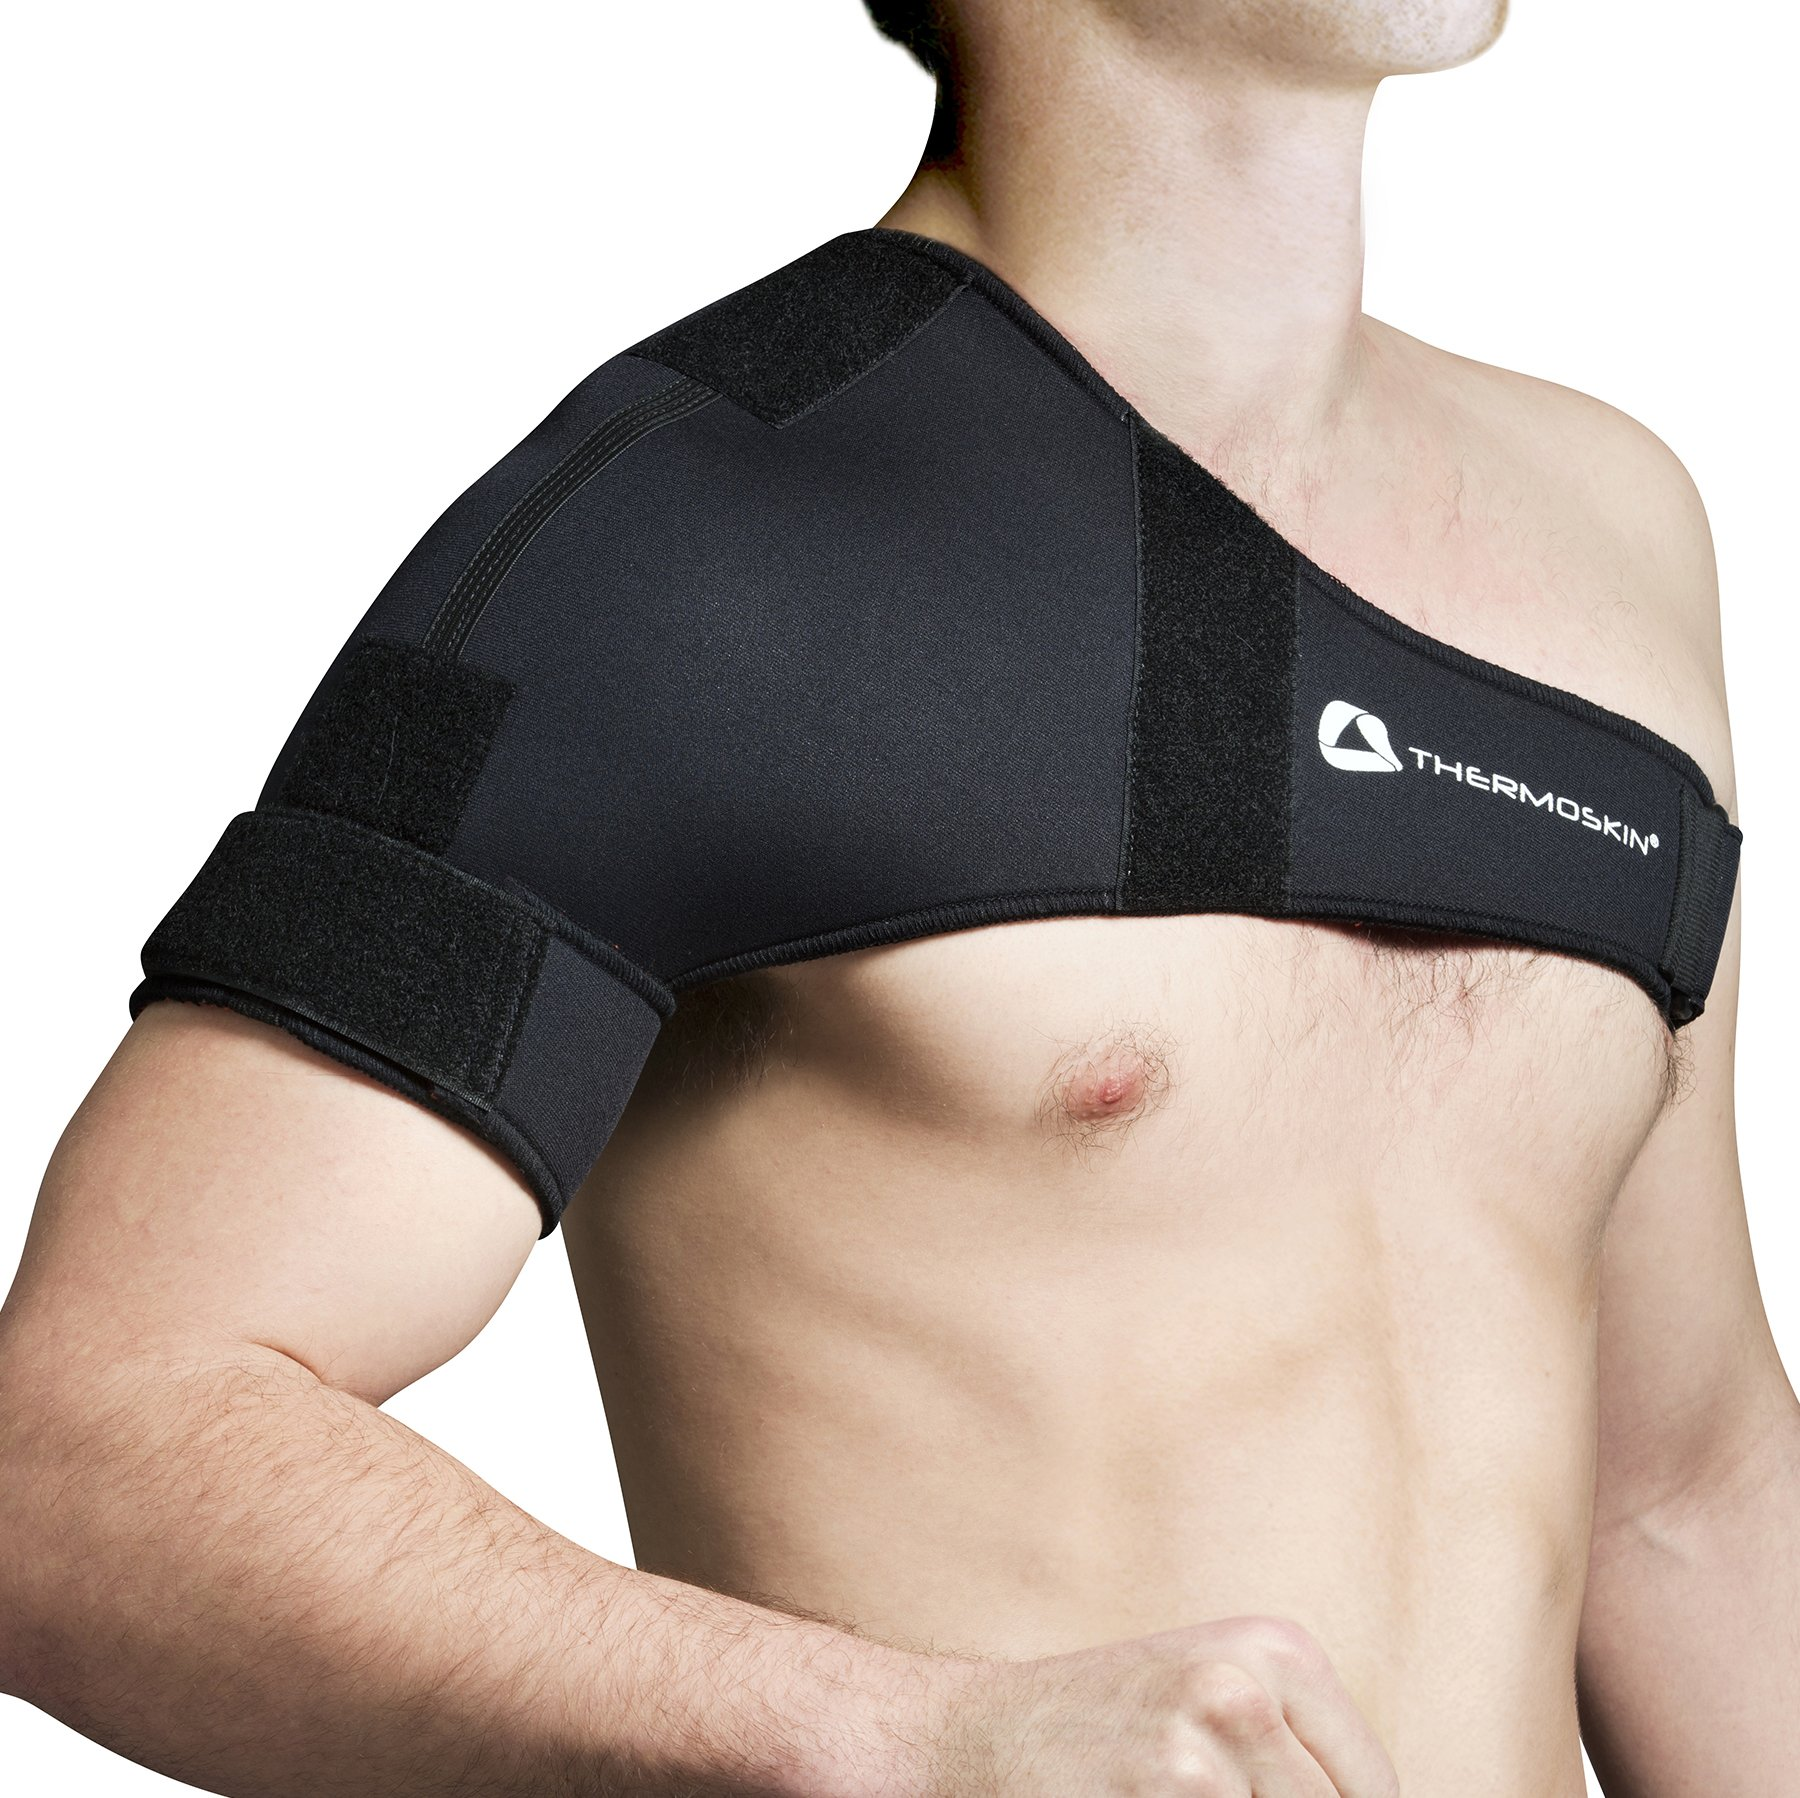 Thermoskin Adjustable Sports Shoulder, Black, 7.3 Ounce by Thermoskin